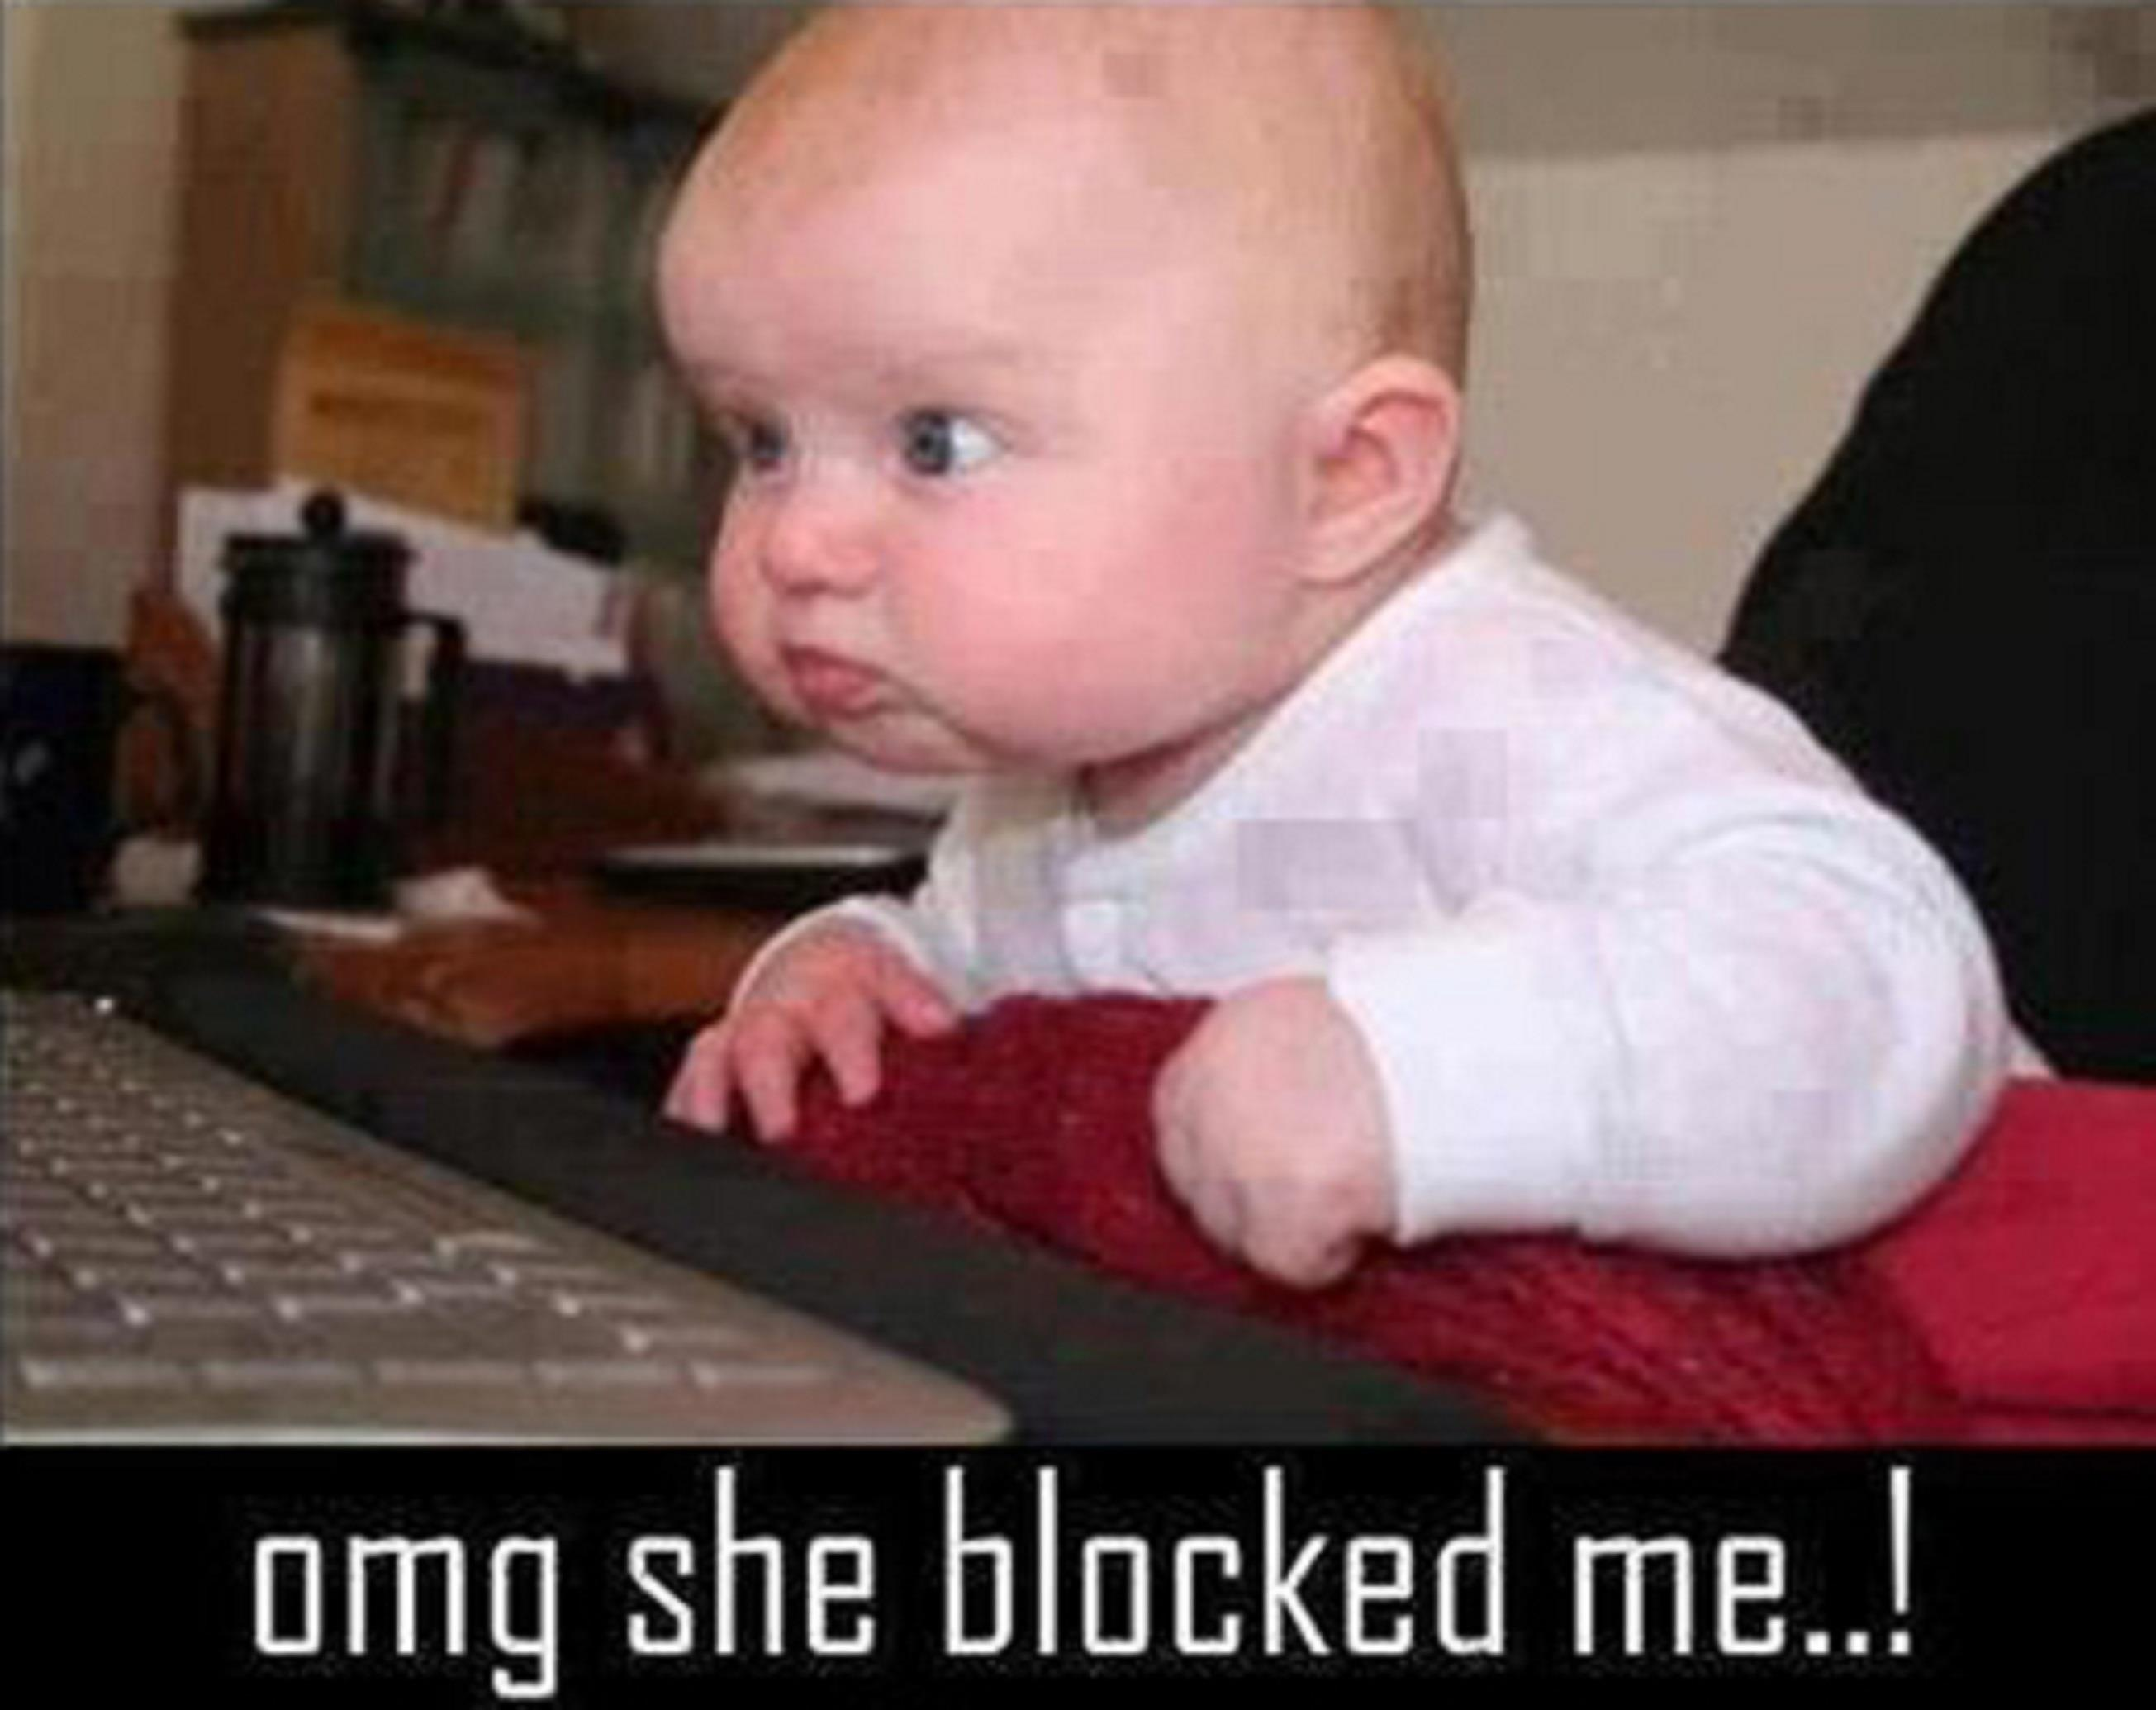 Baby-Omg She Blocked Me...!